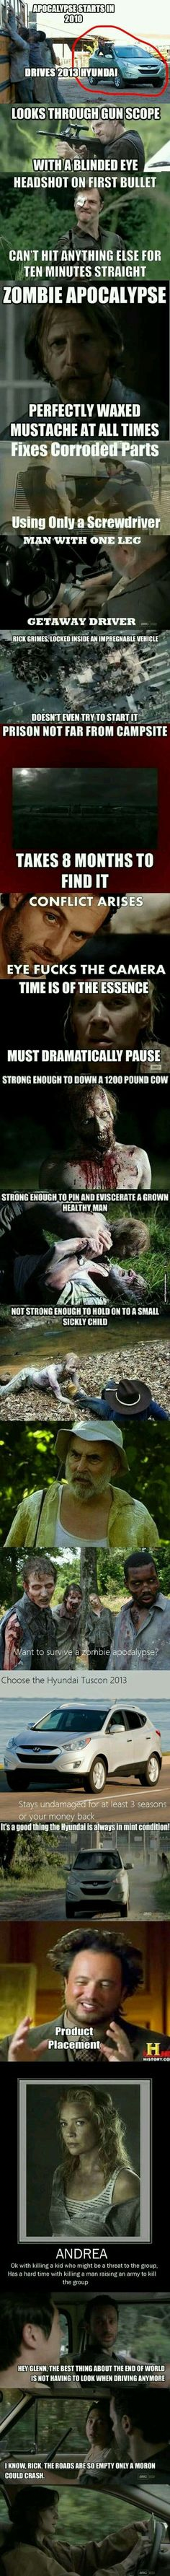 Walking Dead logics